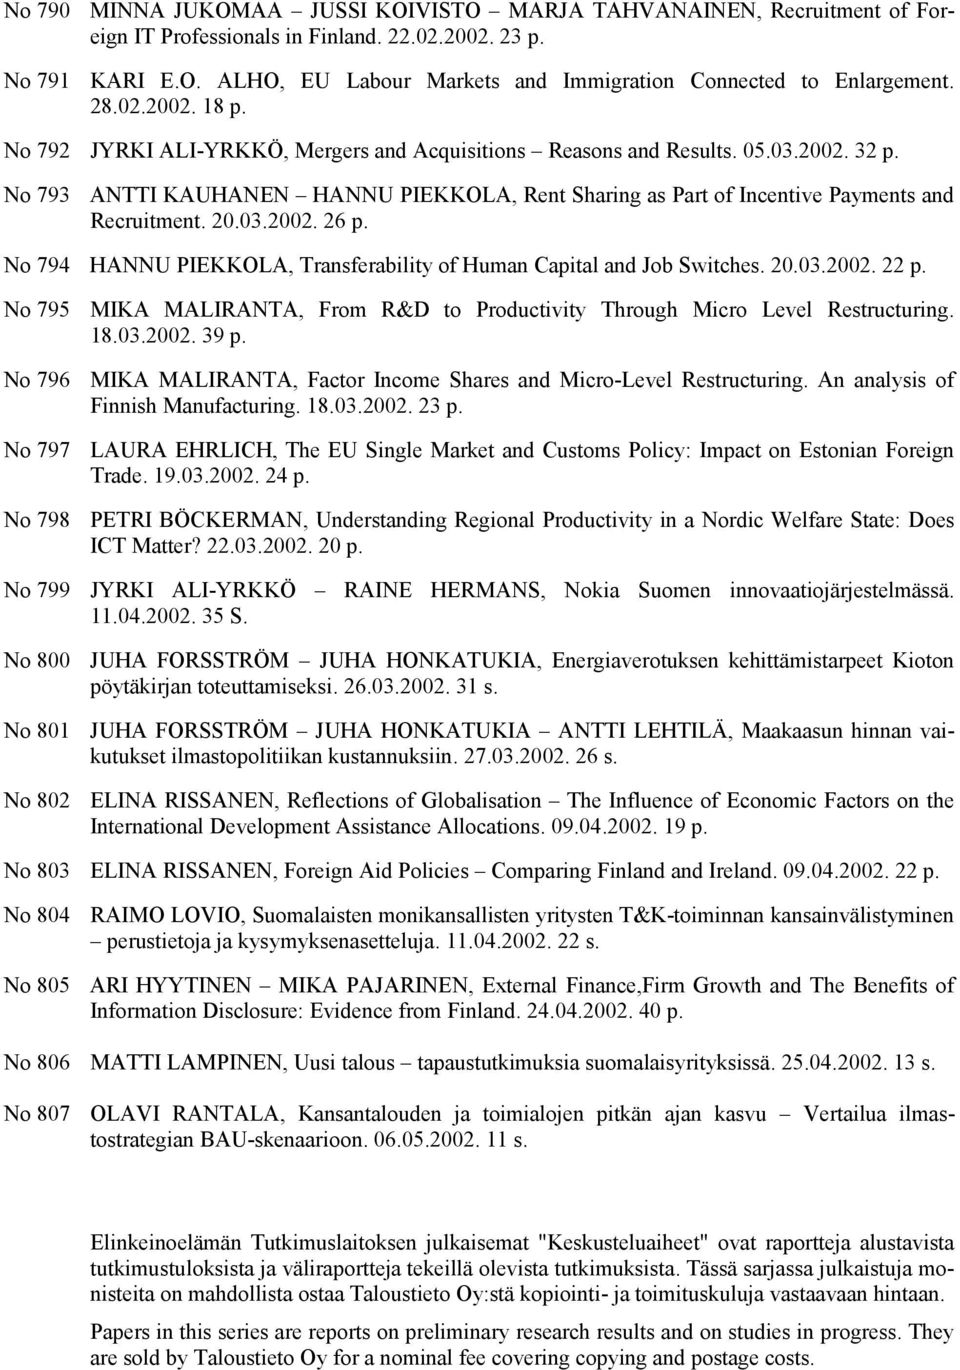 No 793 ANTTI KAUHANEN HANNU PIEKKOLA, Rent Sharing as Part of Incentive Payments and Recruitment. 20.03.2002. 26 p. No 794 HANNU PIEKKOLA, Transferability of Human Capital and Job Switches. 20.03.2002. 22 p.